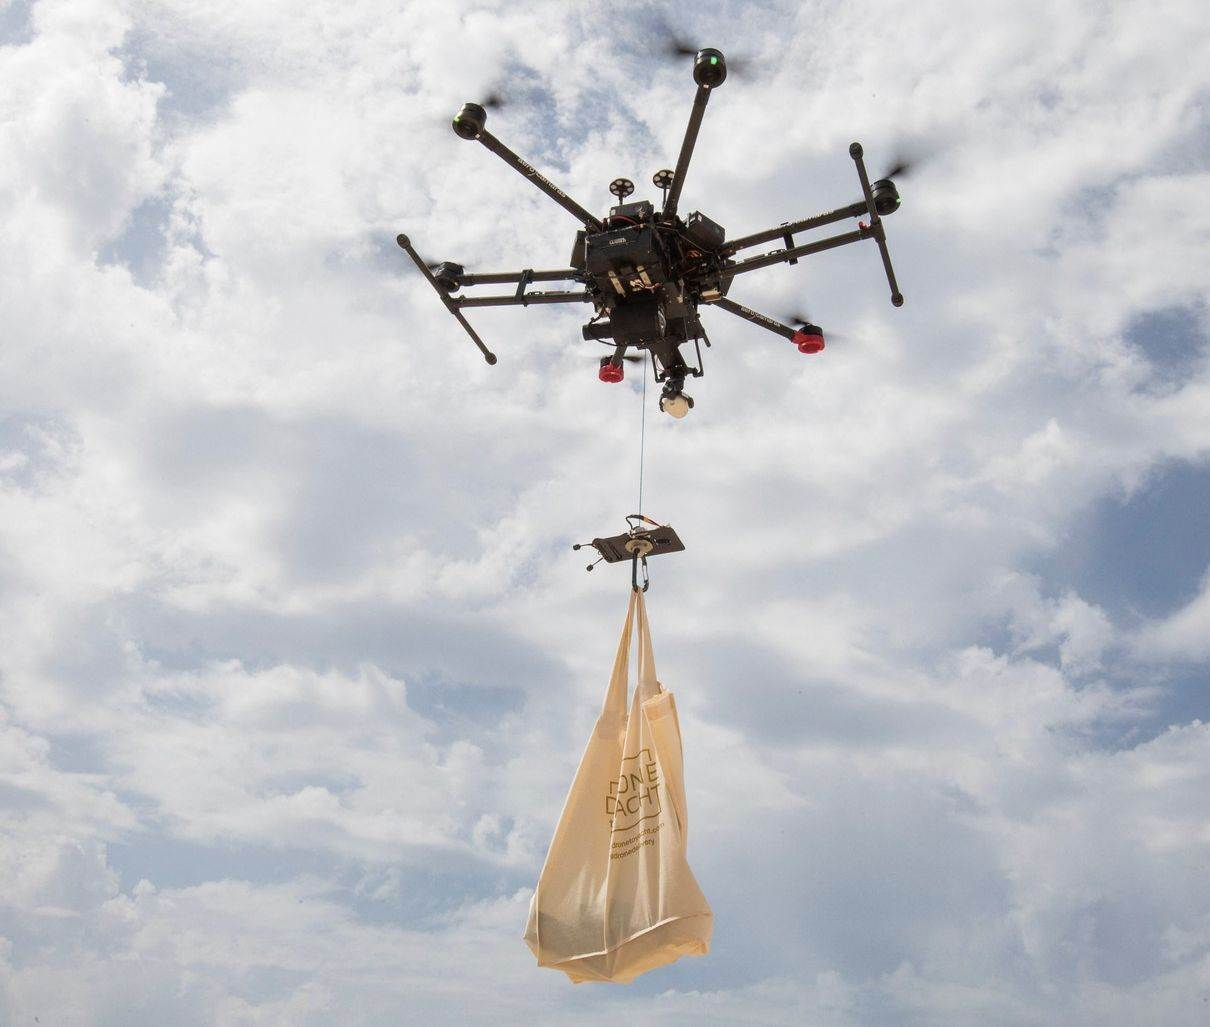 FOOD-DRINK;SCIENCE;food and drink;lifestyle;lifestyle and leisure;science and technology;SPAIN;IBIZA;DRONE;FOOD;DELIVERY;category_code_lif;category_code_sci